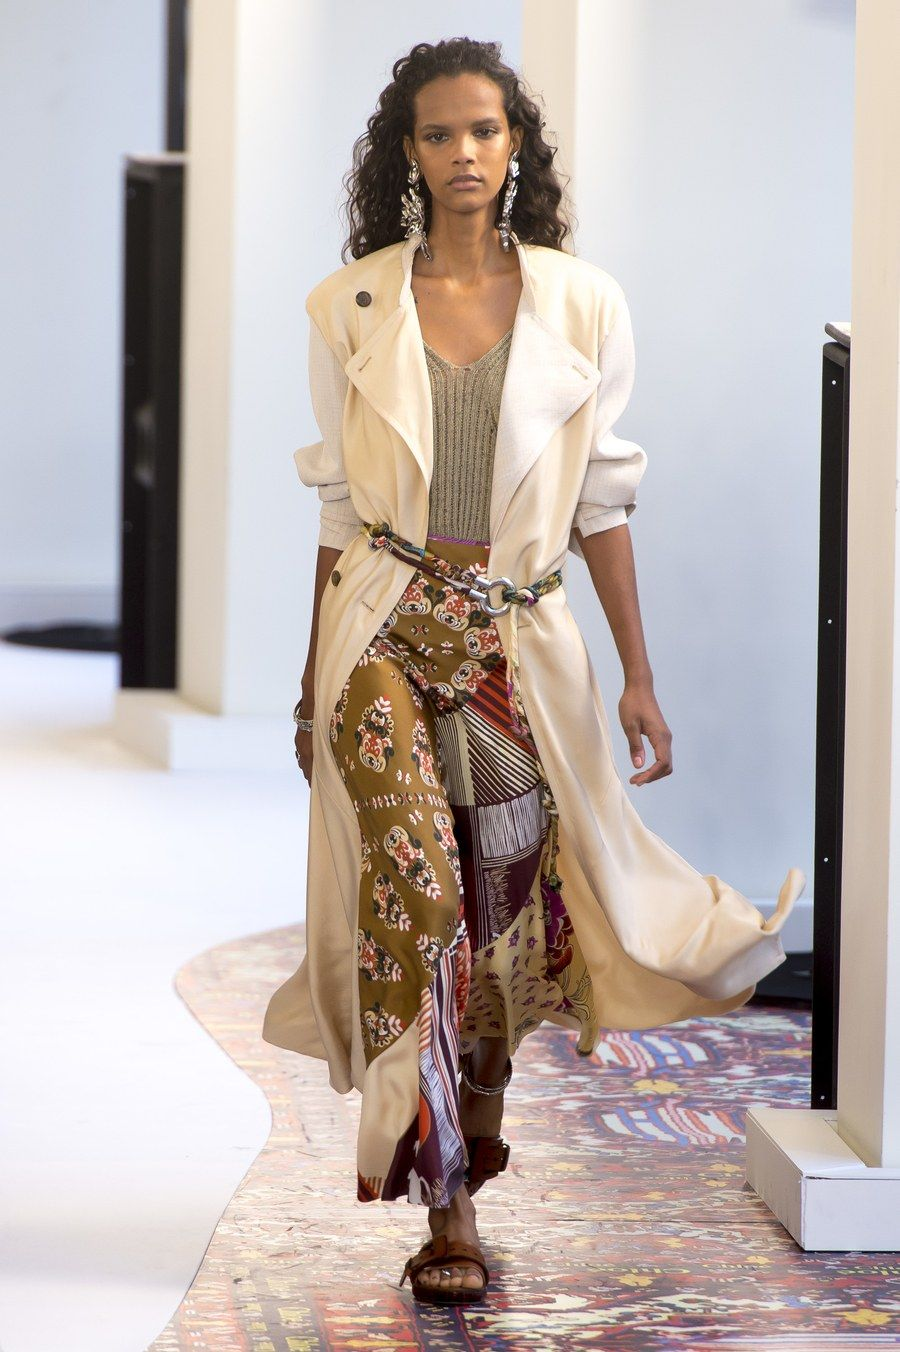 Shaik shanina stuns embellished gown amfar milano, 6 tips style inspired by free people